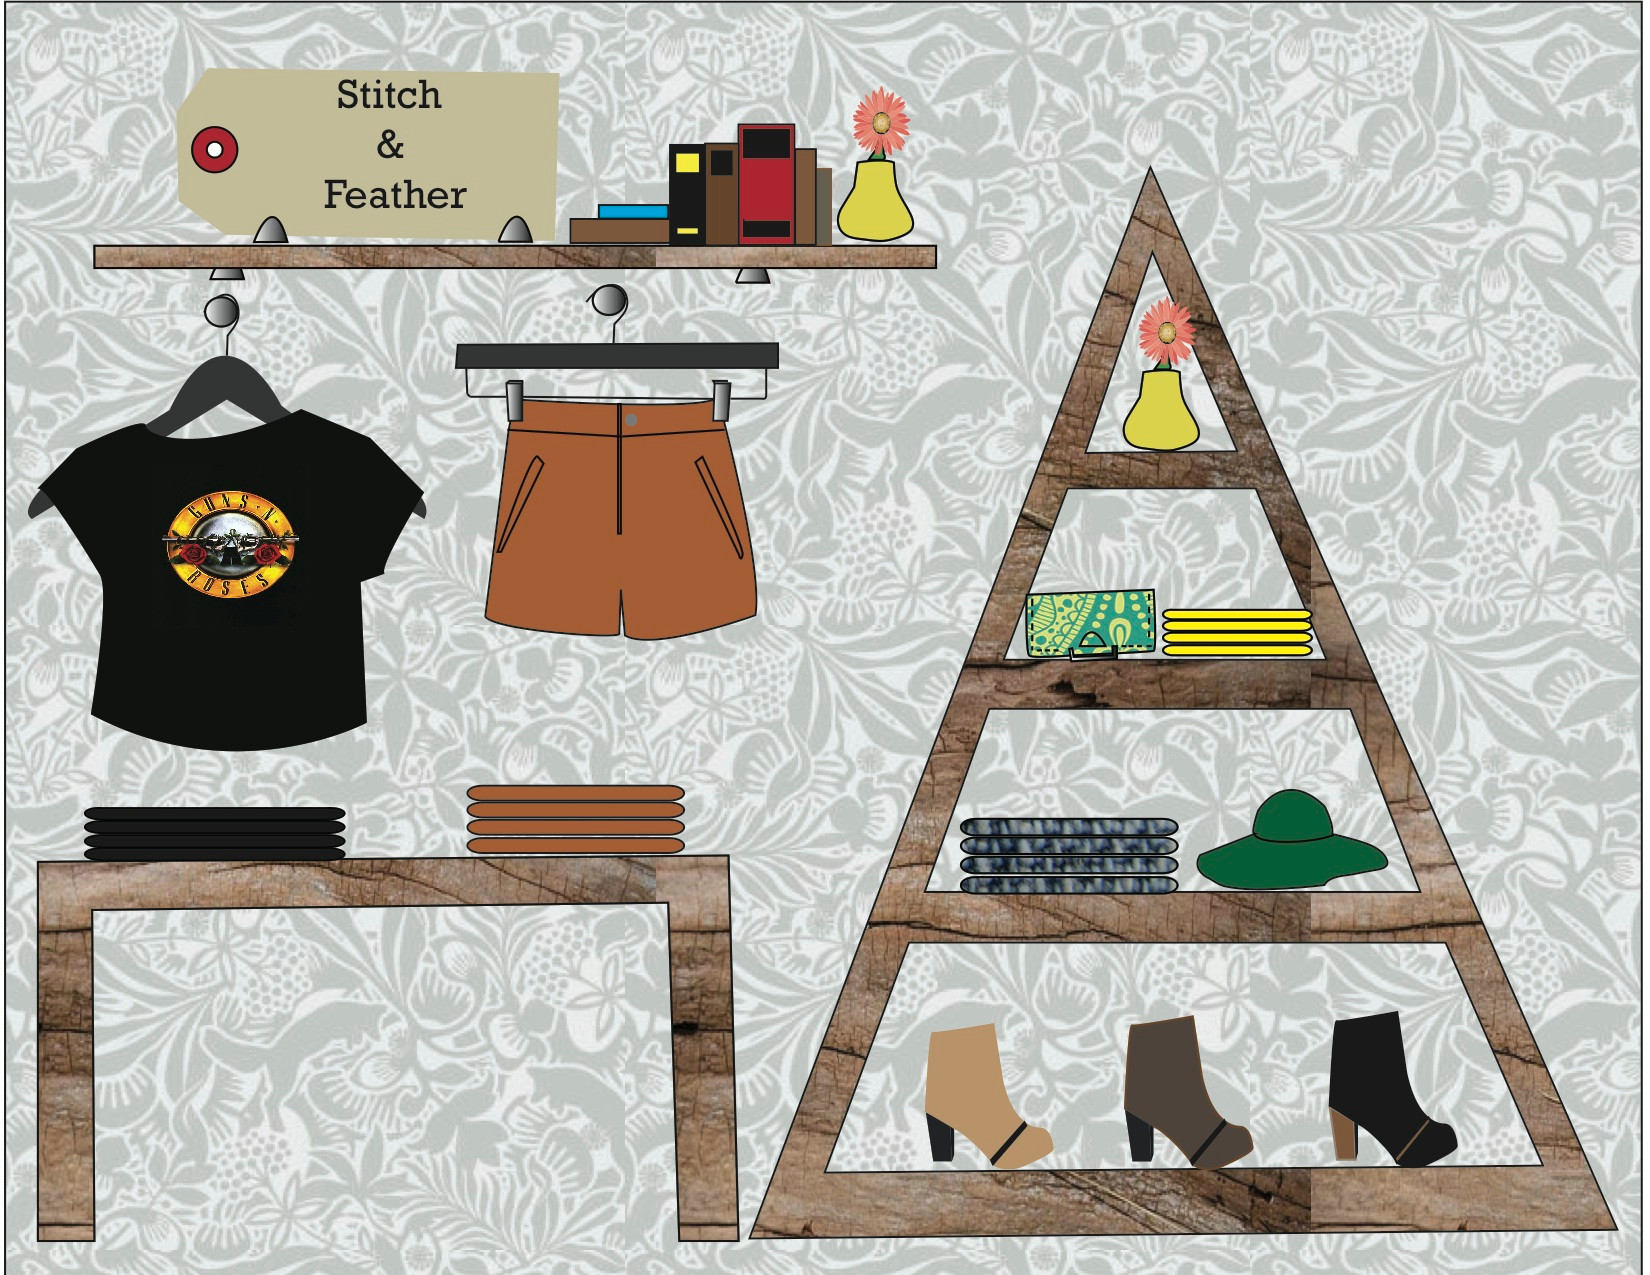 Visual Merchandising Wall Planogram